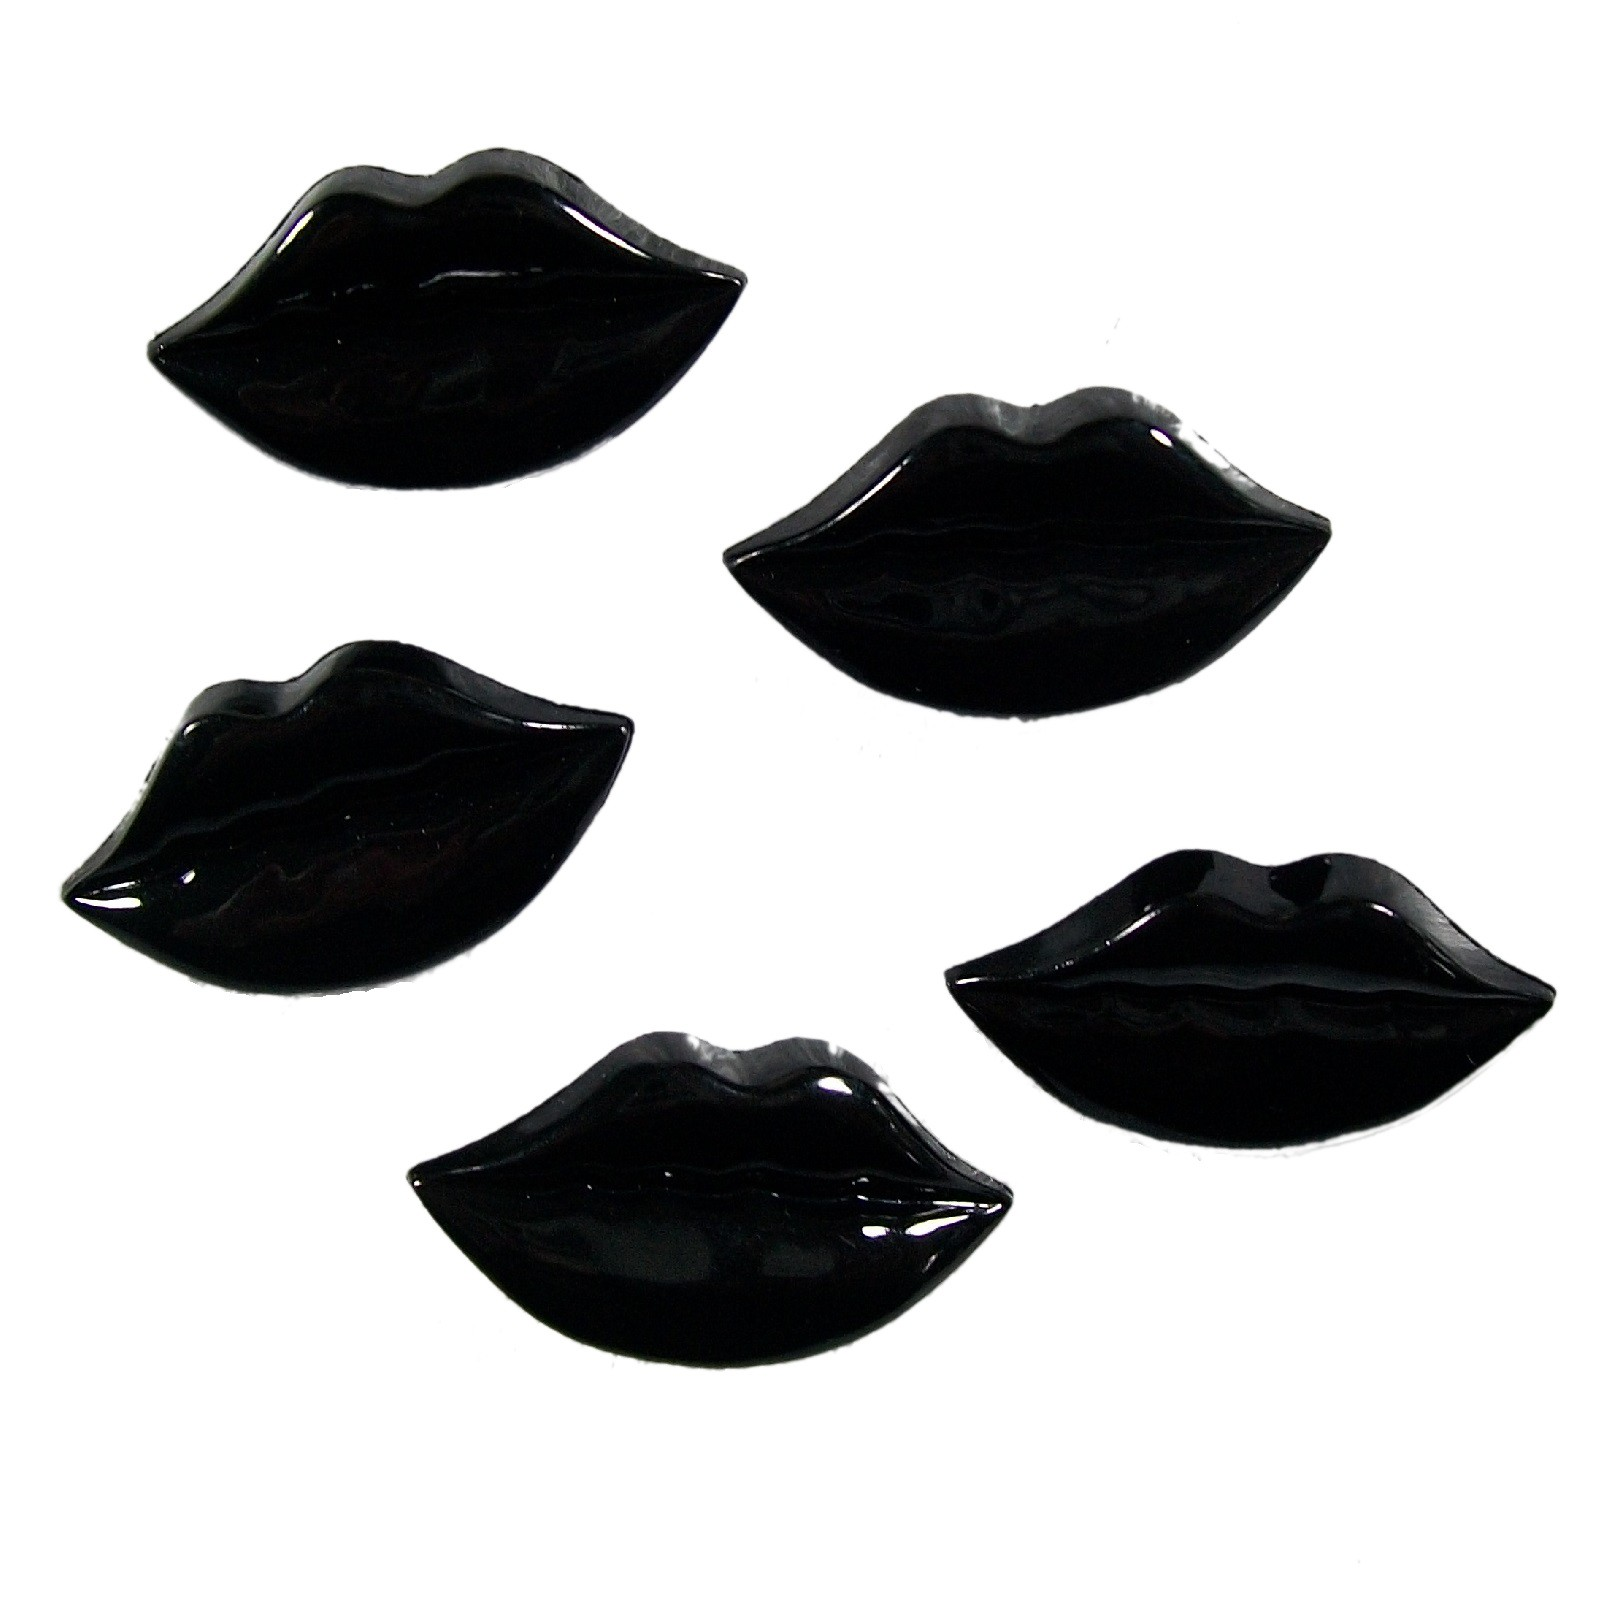 Lips Shape Plastic Kitsch Buttons 25mm Black Pack of 5